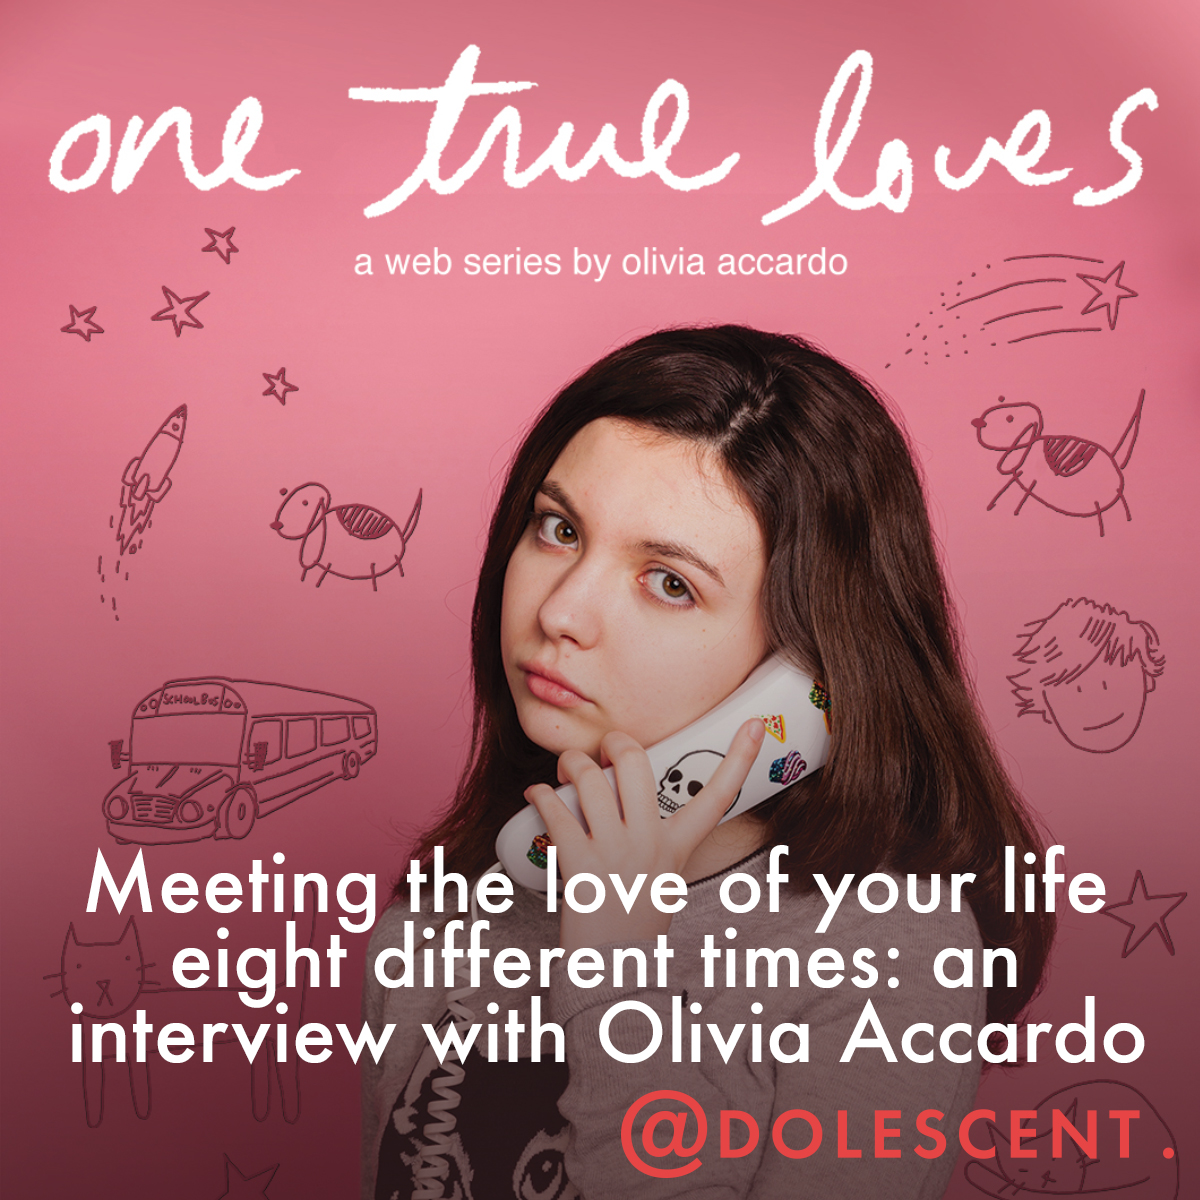 - Meeting the love of your life eight different times: an interview with Olivia Accardo Published on Adolescent Content, 8/14/18.